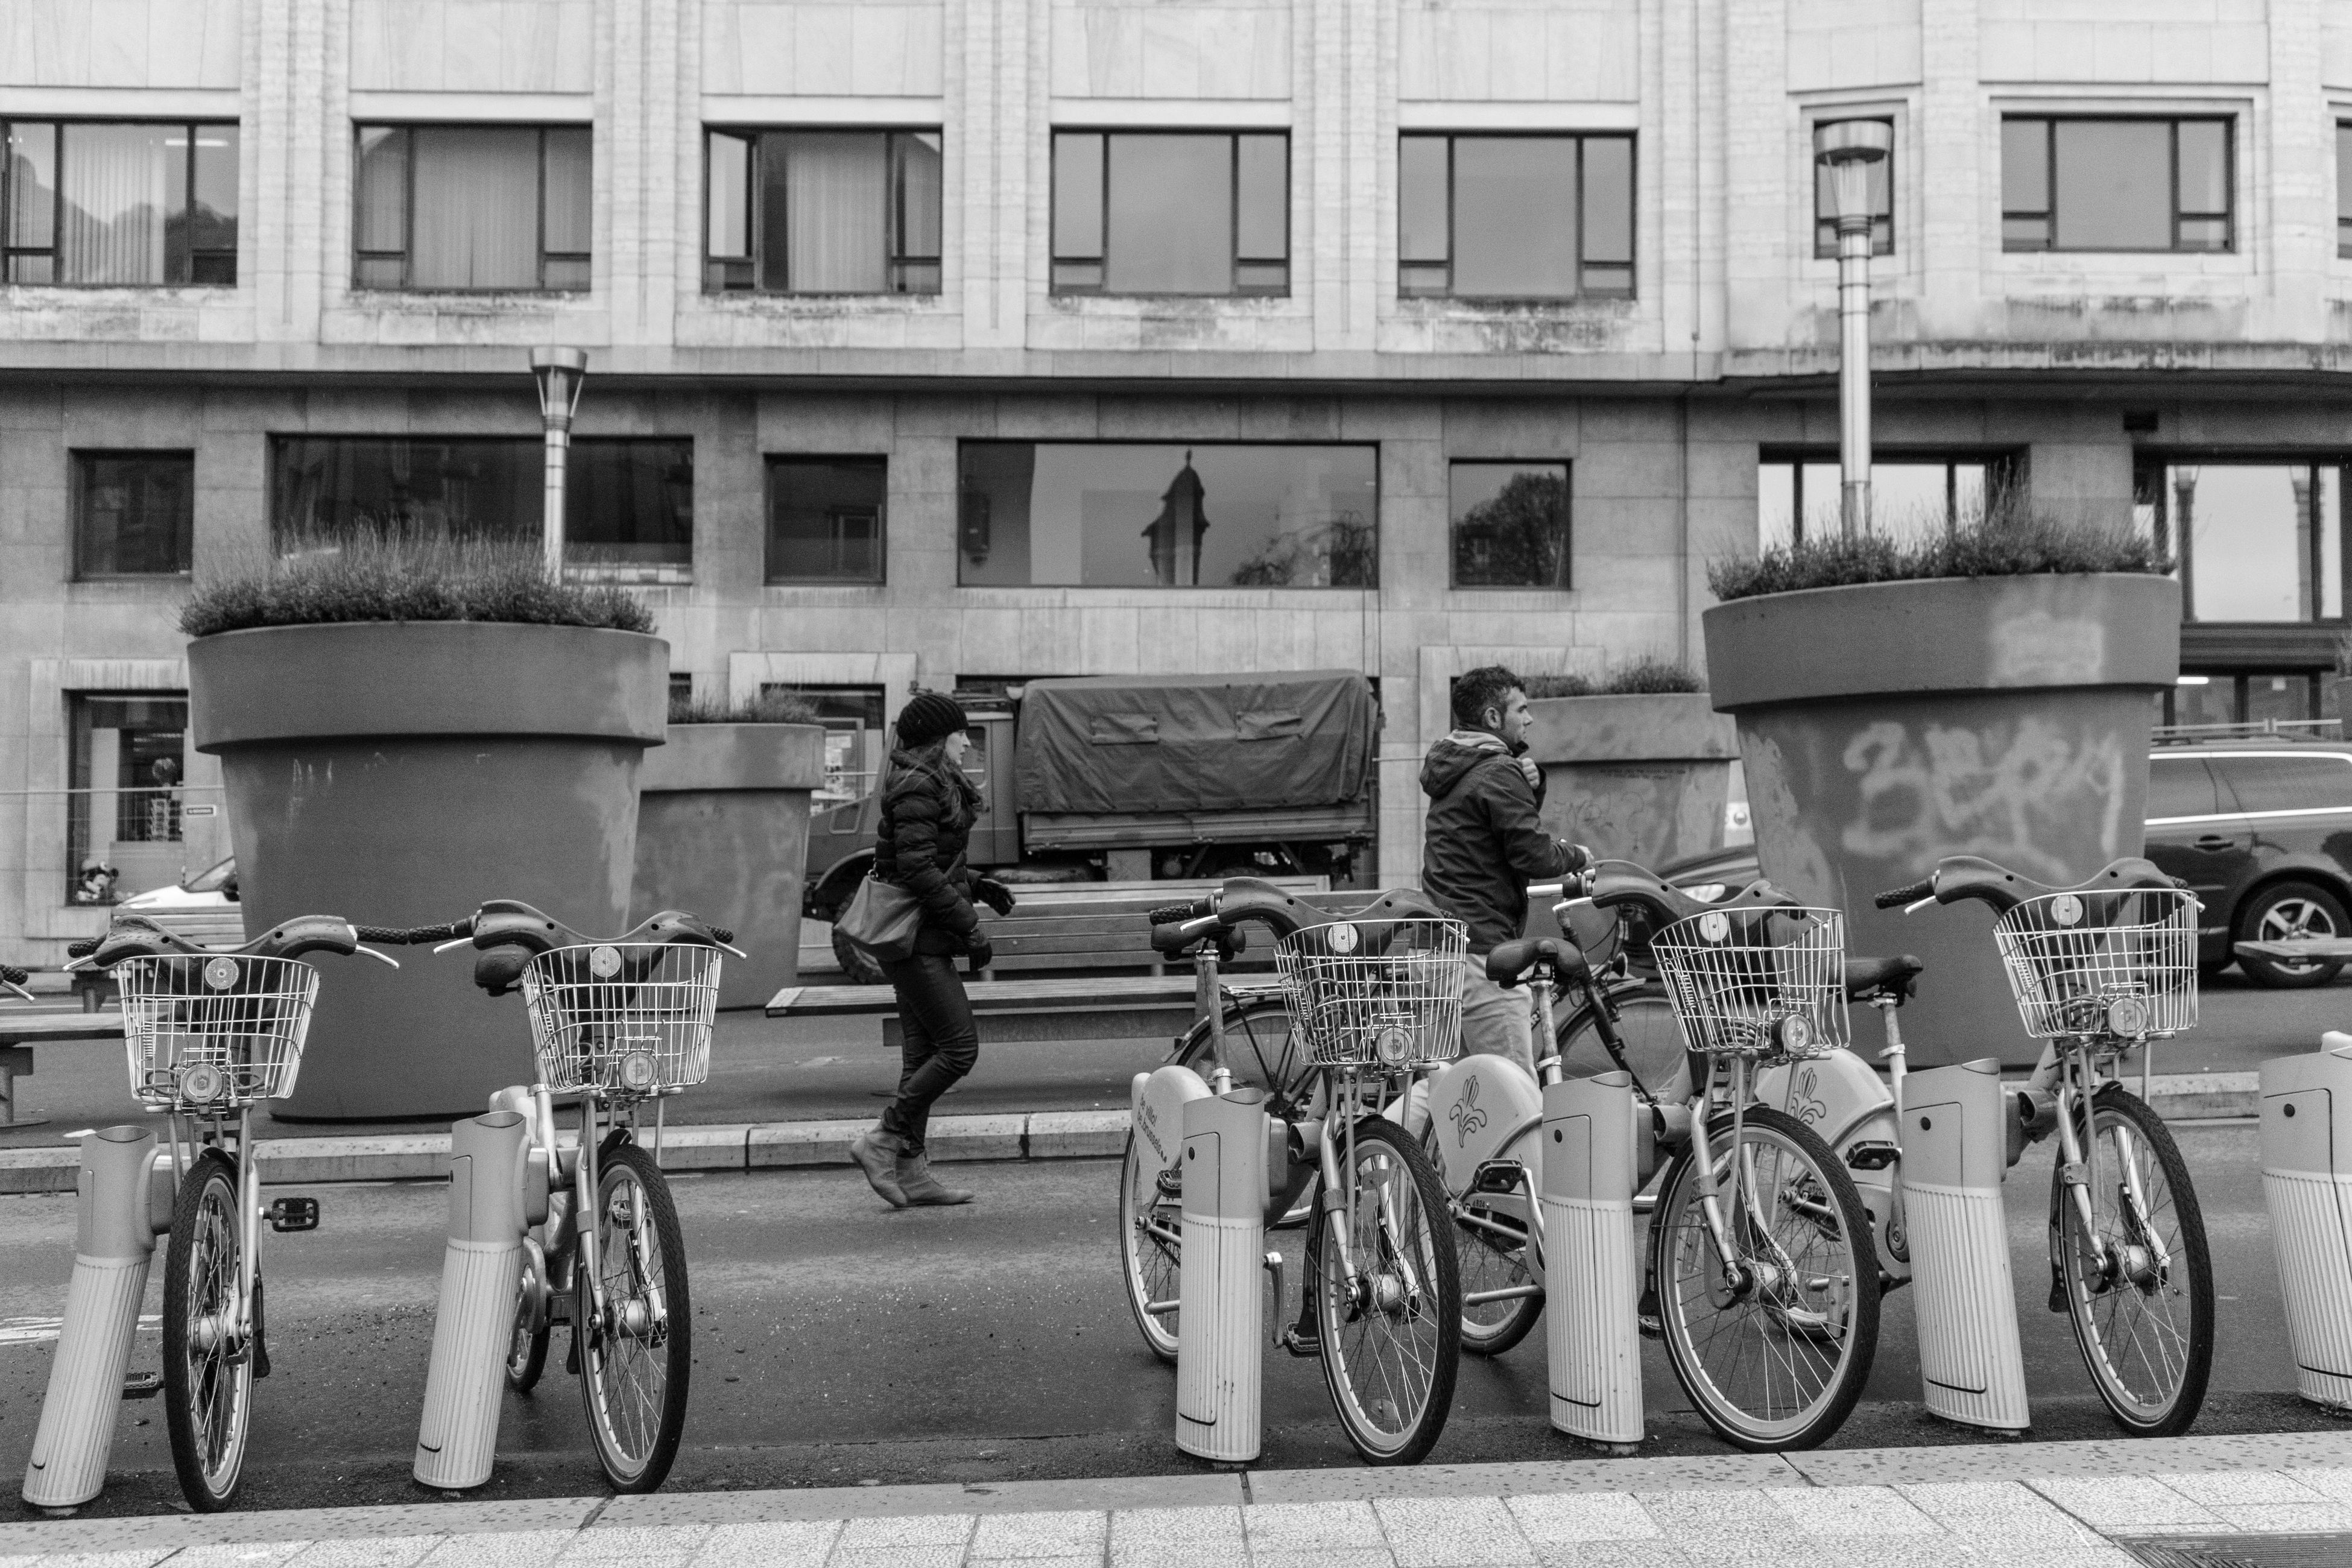 building exterior, architecture, built structure, bicycle, men, transportation, street, city, person, mode of transport, building, walking, land vehicle, lifestyles, day, window, city life, outdoors, full length